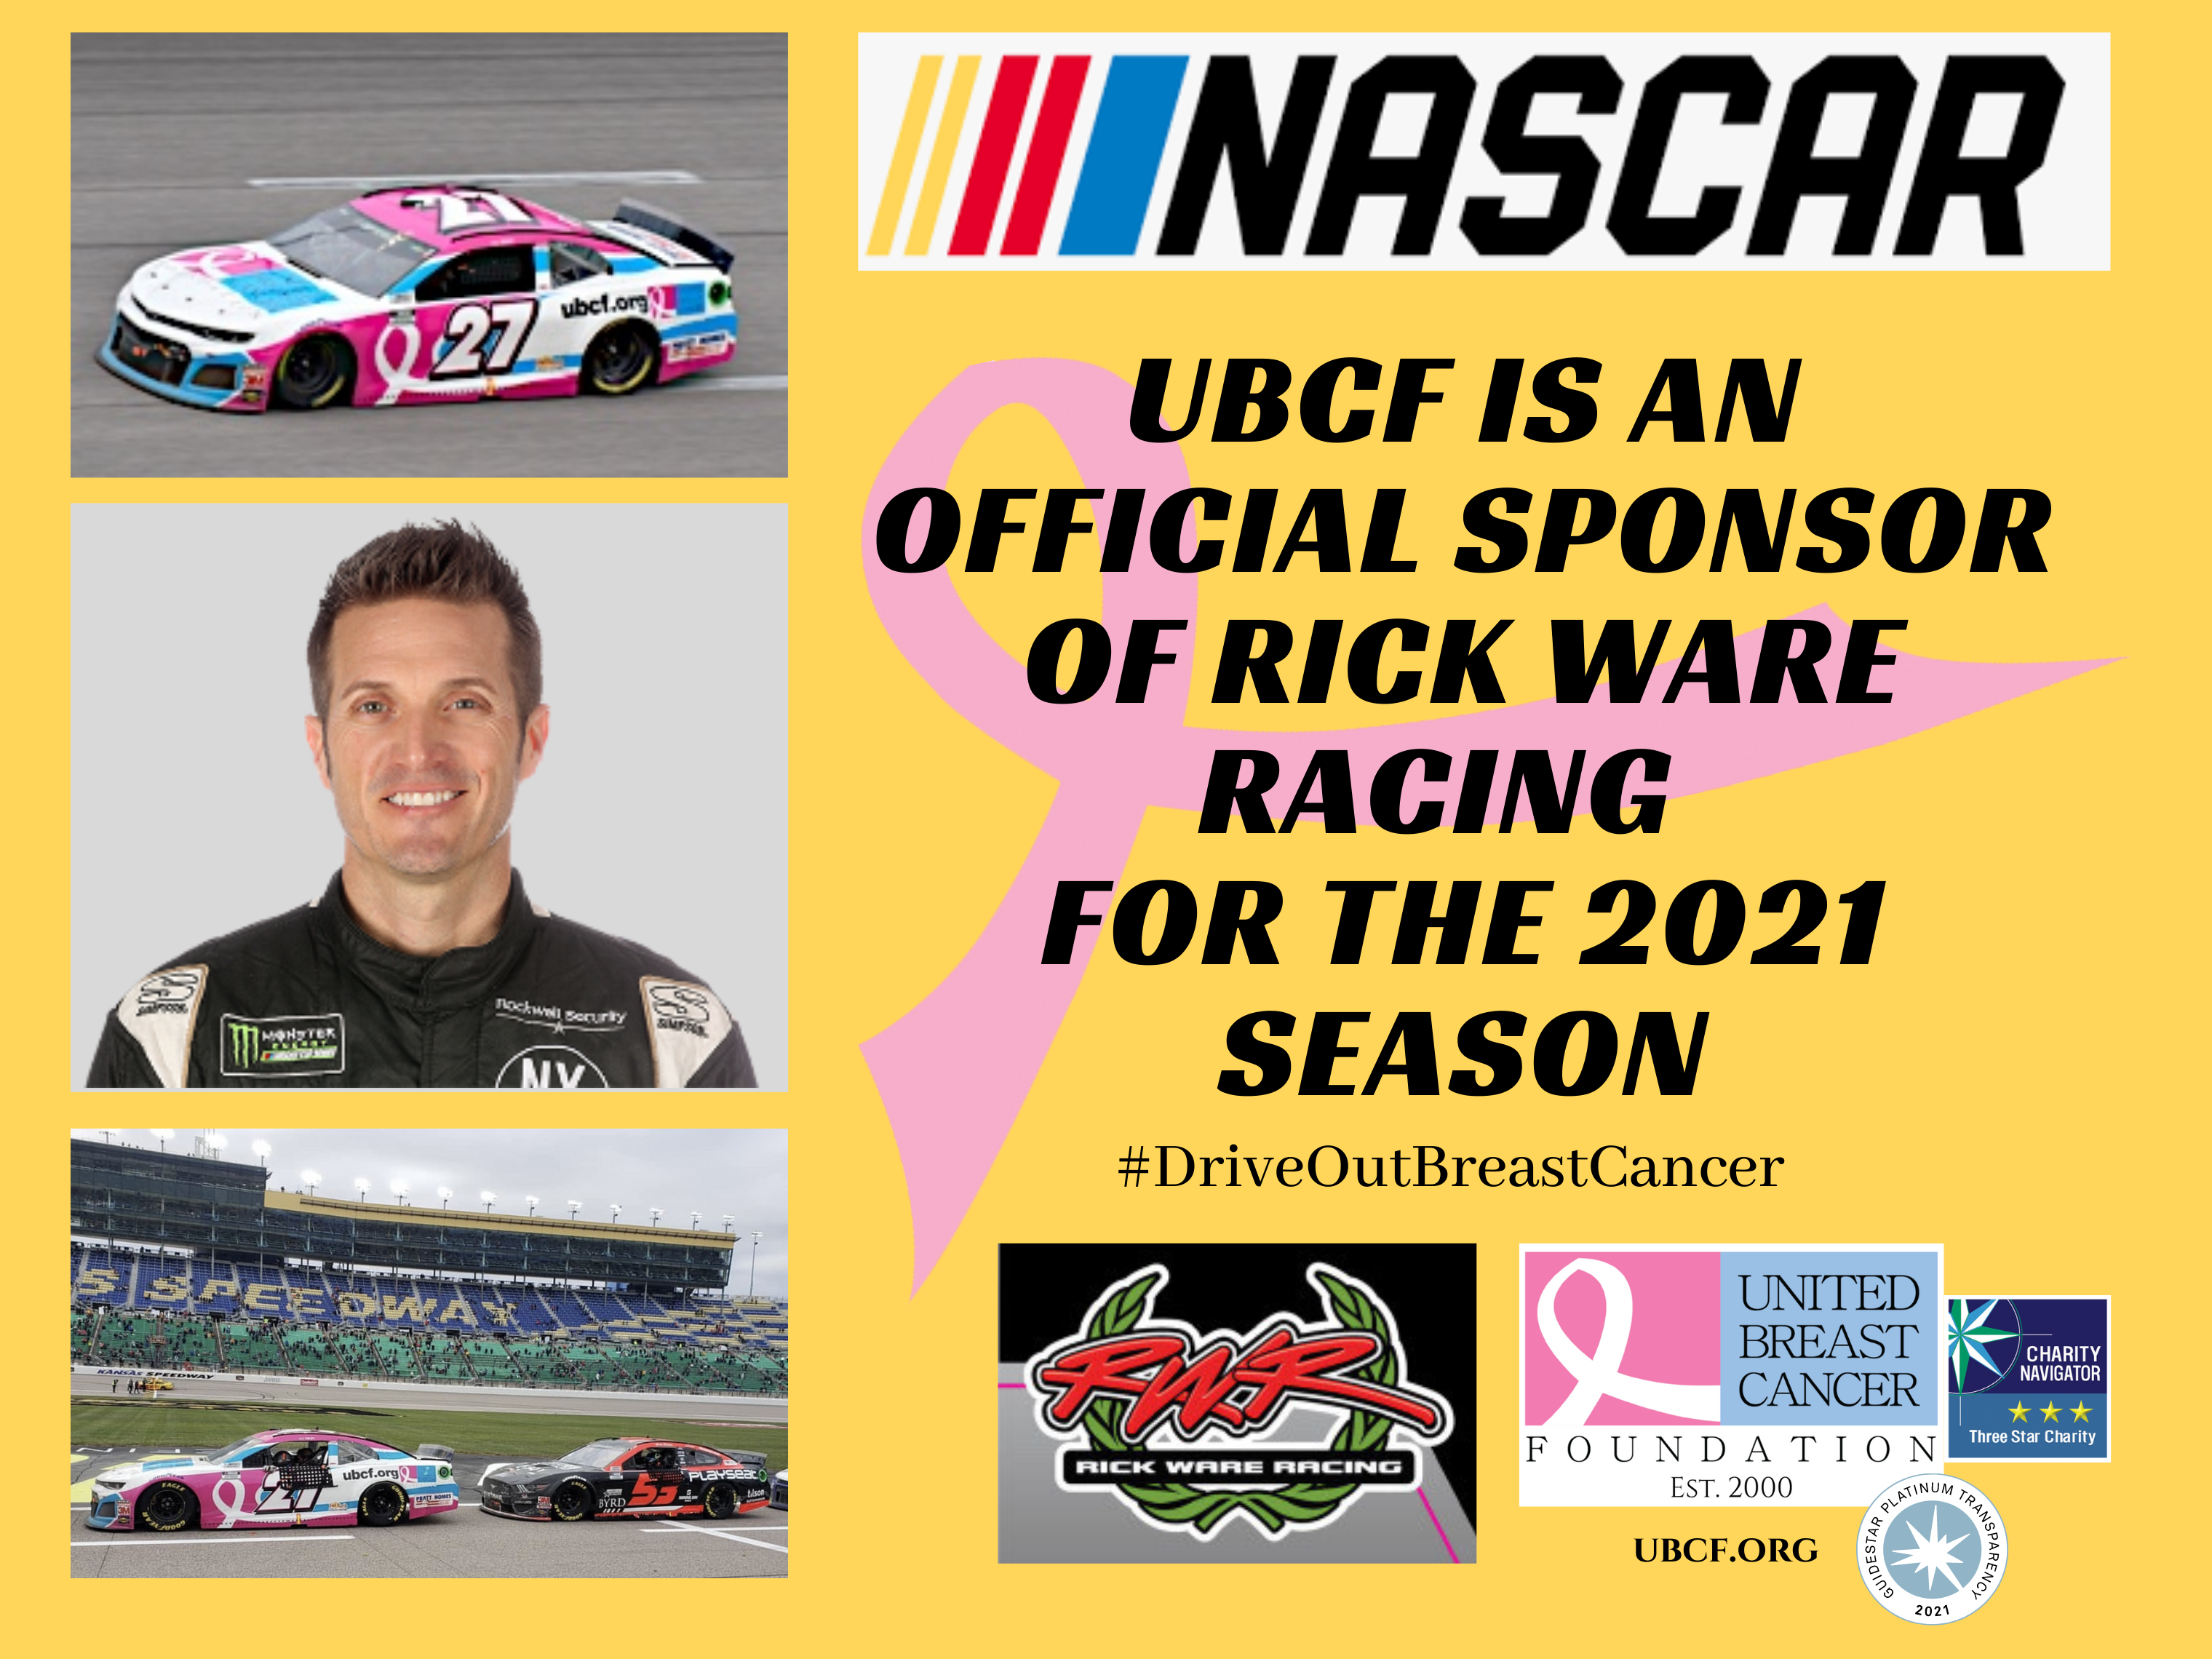 UBCF Partners with JJ Yeley and Rick Ware Racing for 2021 NASCAR Season #DriveOutBreastCancer